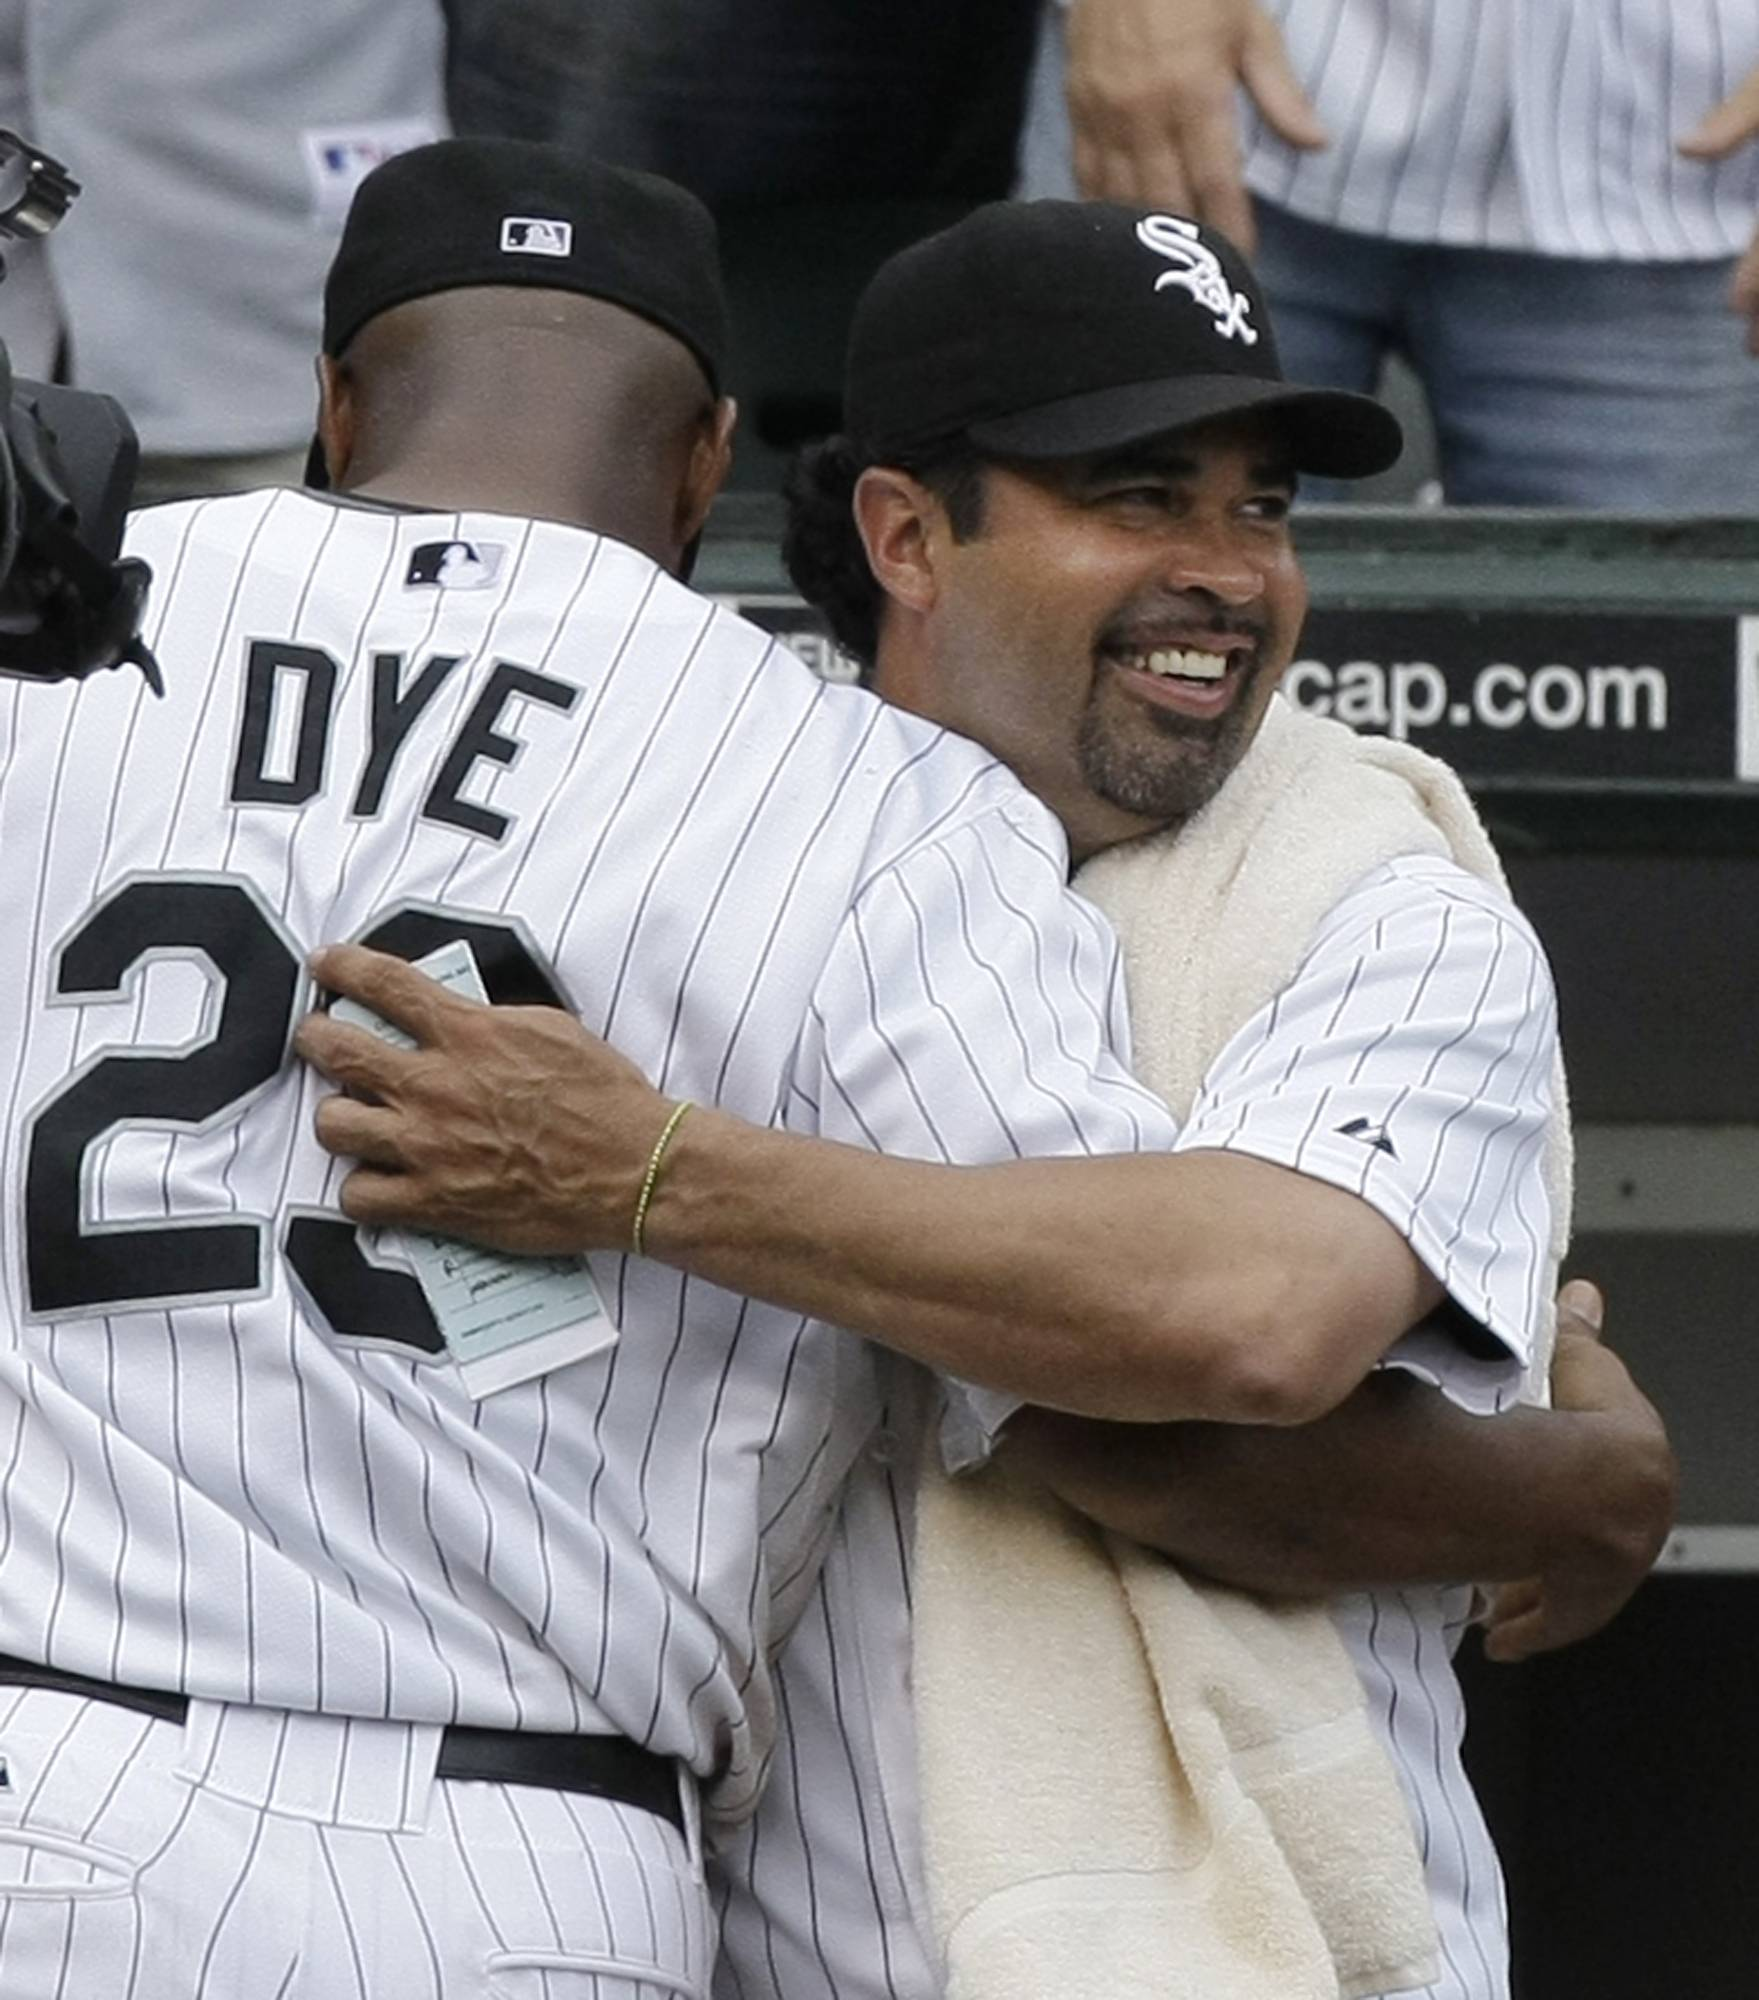 Former Chicago White Sox manager and shortstop Ozzie Guillen, right, and outfielder Jermaine Dye will be among the players taking the field at Boomers Stadium in Schaumburg later this year for a charity softball event.